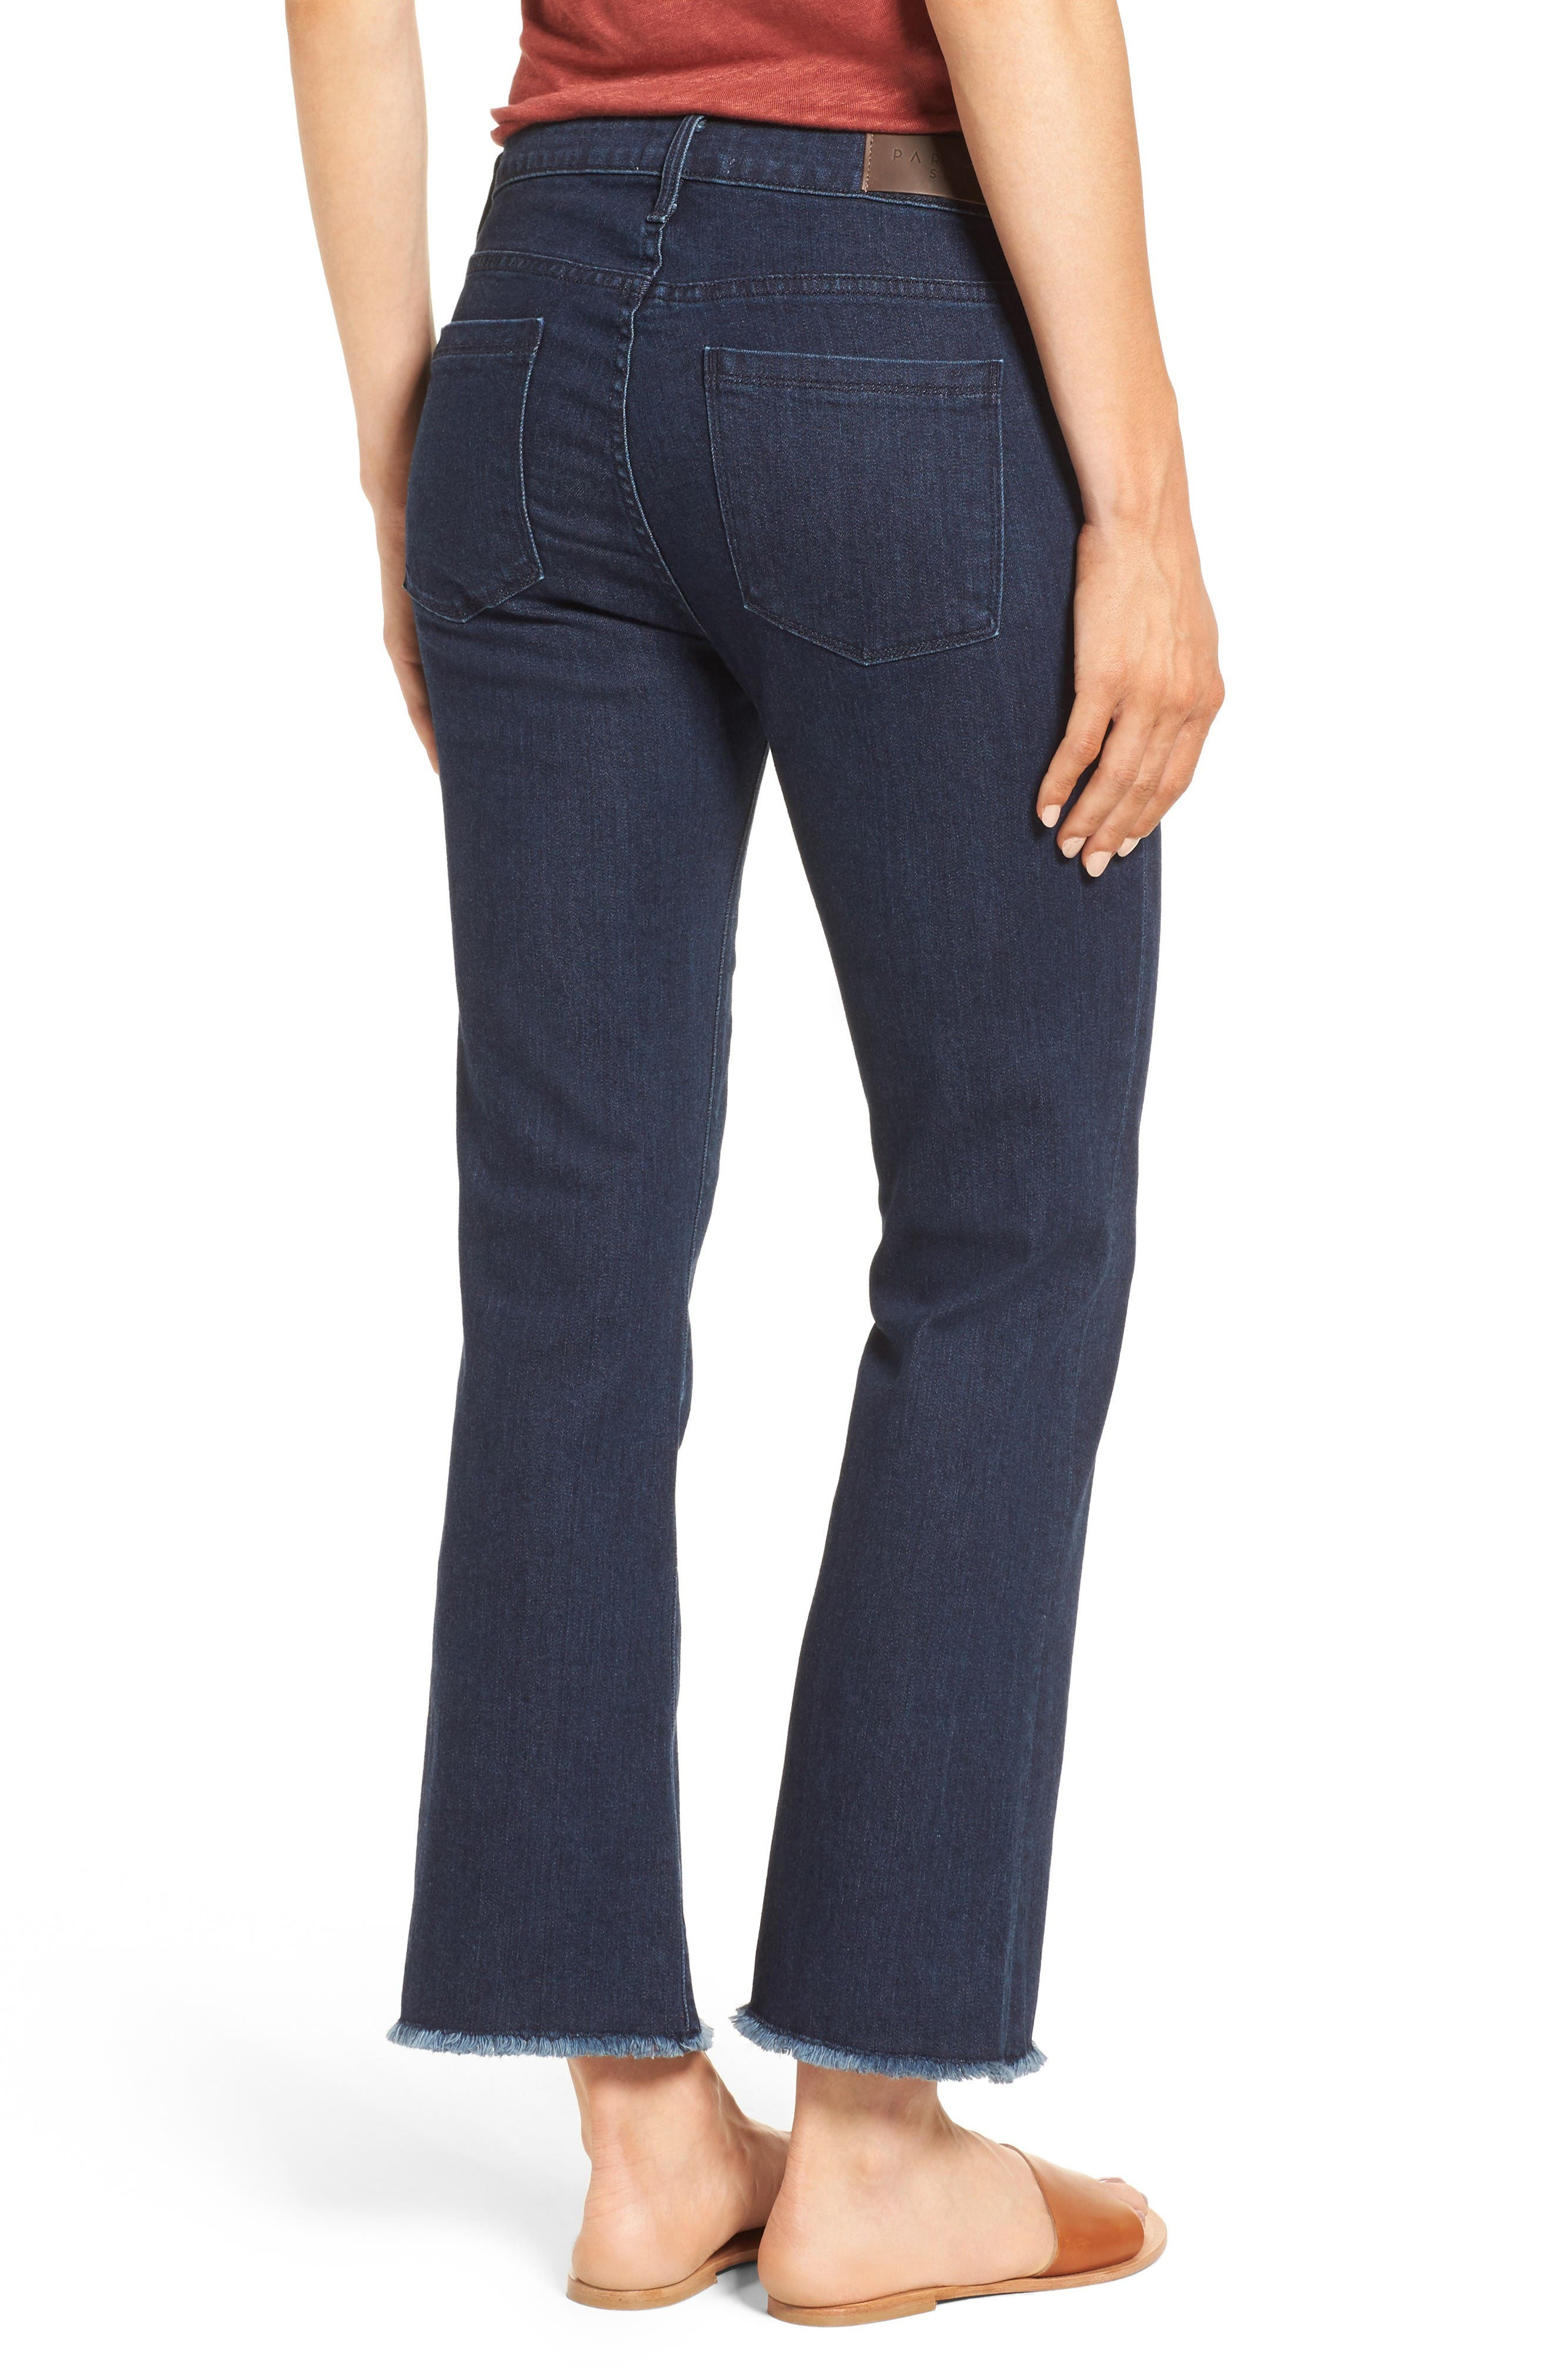 Alternate Image 3  - PARKER SMITH Brynna Crop Flare Jeans (Baltic)